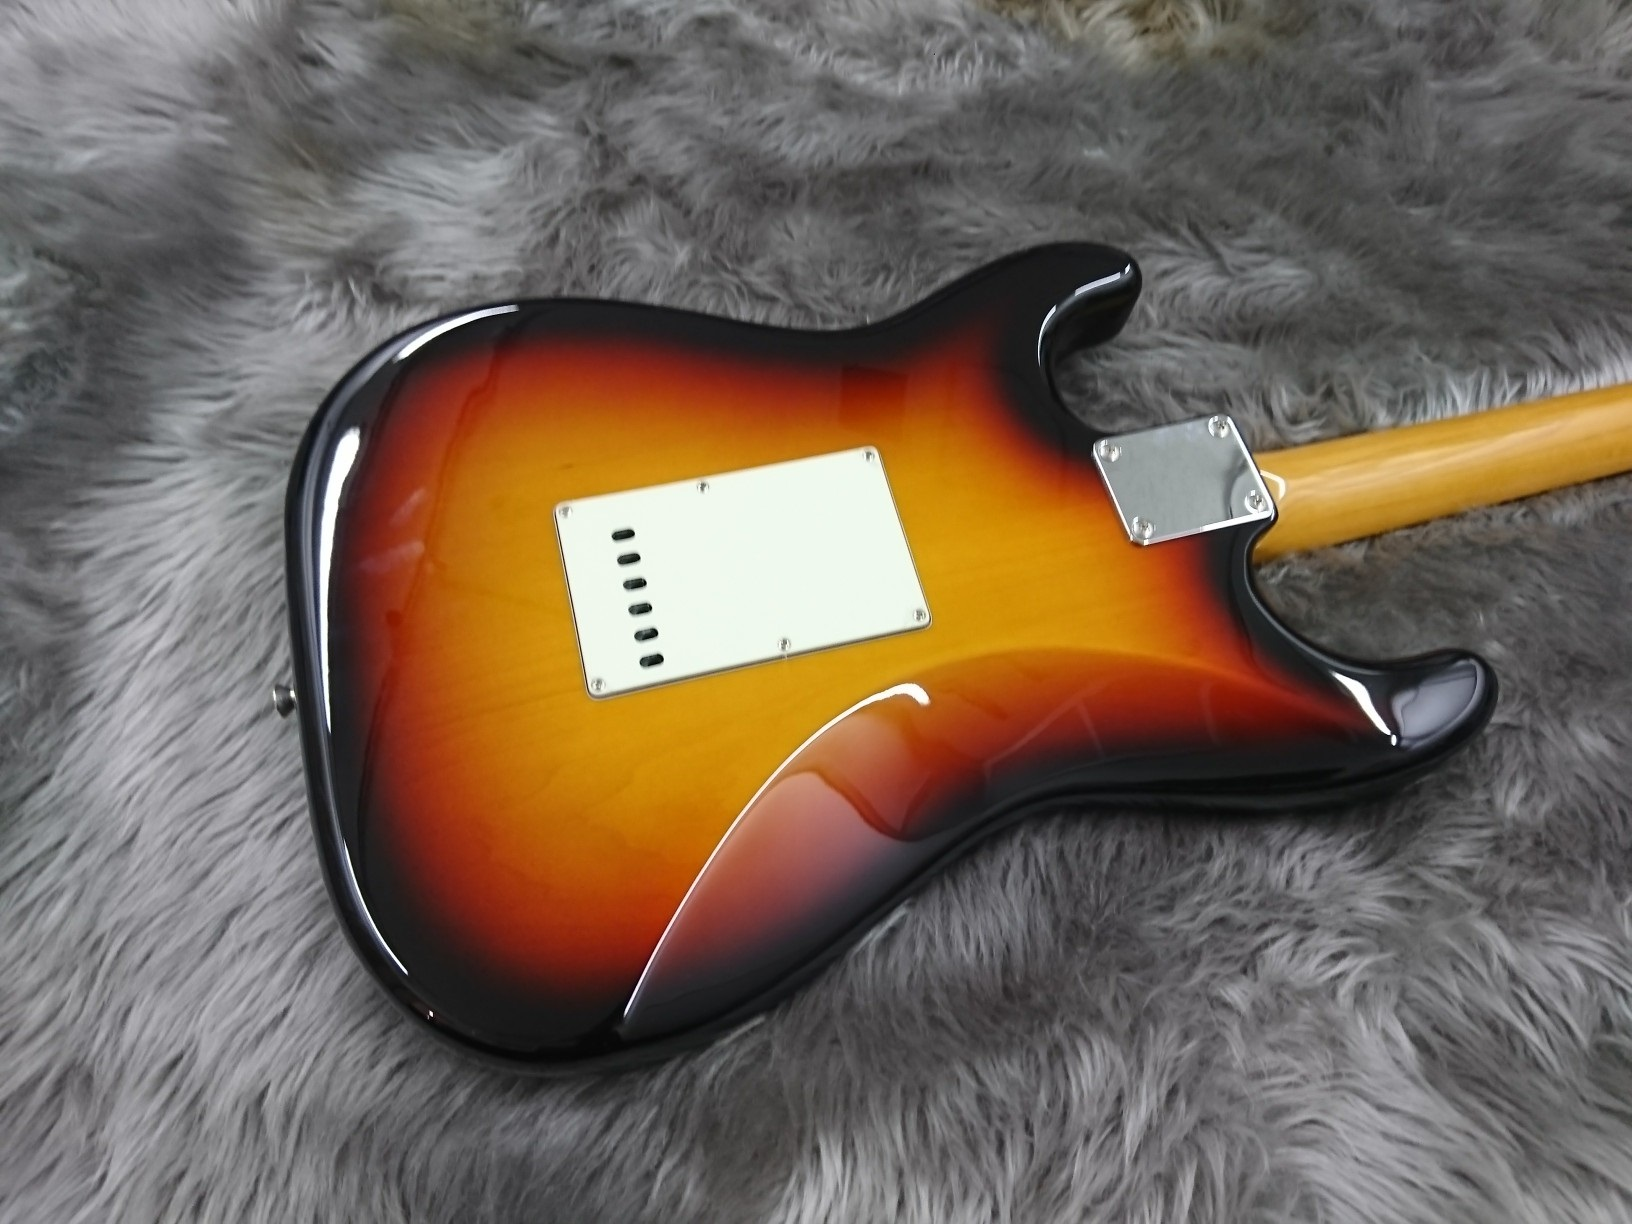 MADE IN JAPAN TRADITIONAL 60S STRATOCASTER RWのボディバック-アップ画像